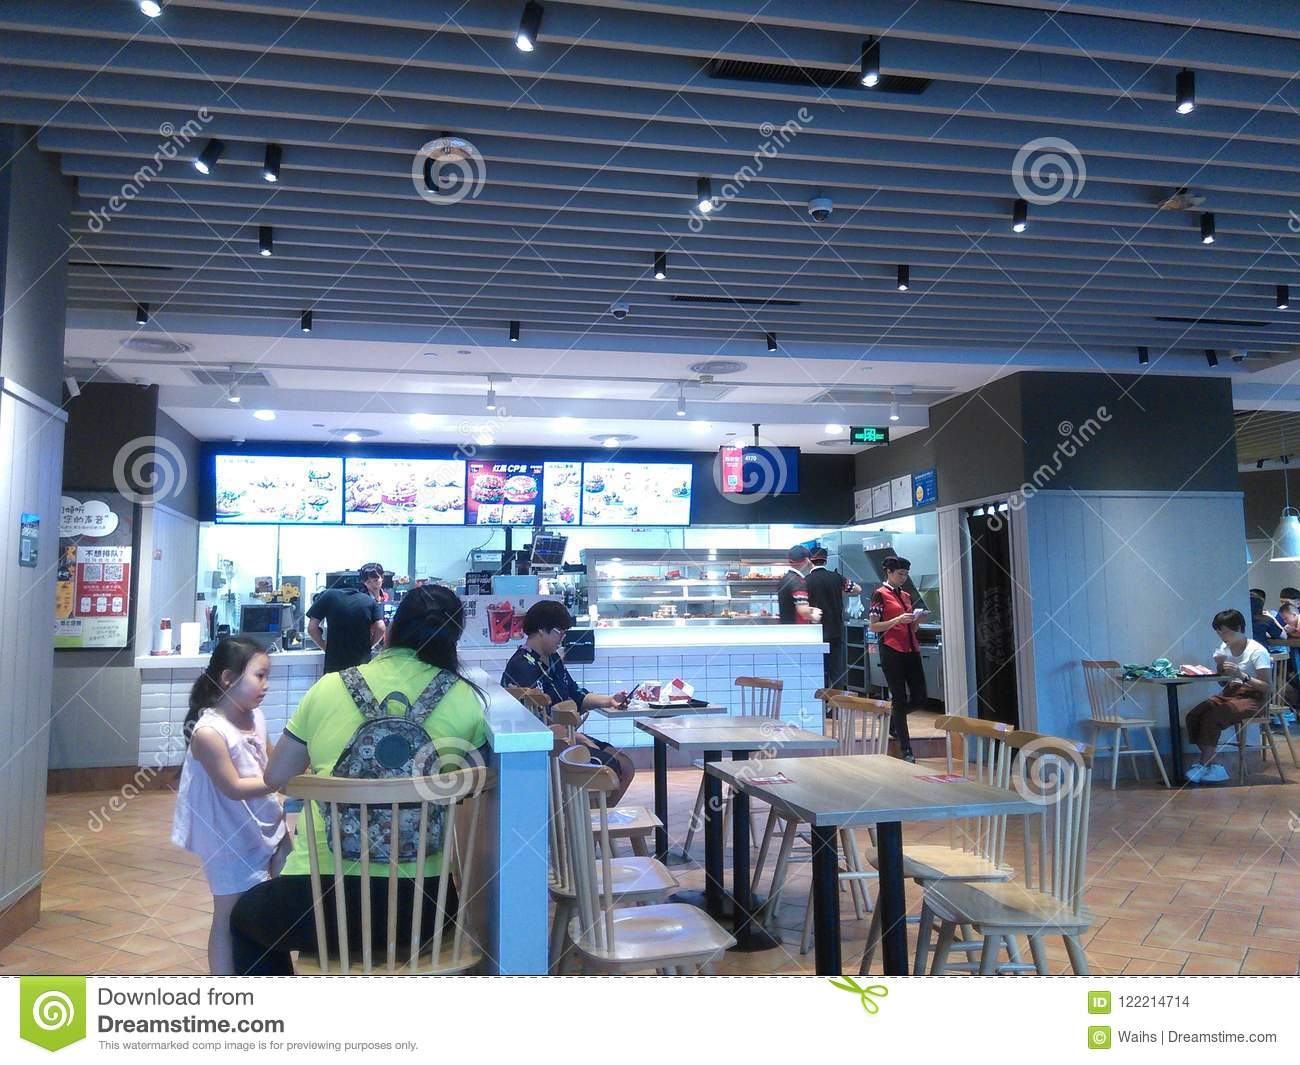 Shenzhen, China: the indoor scenery of KFC restaurant, people enjoy delicious food.